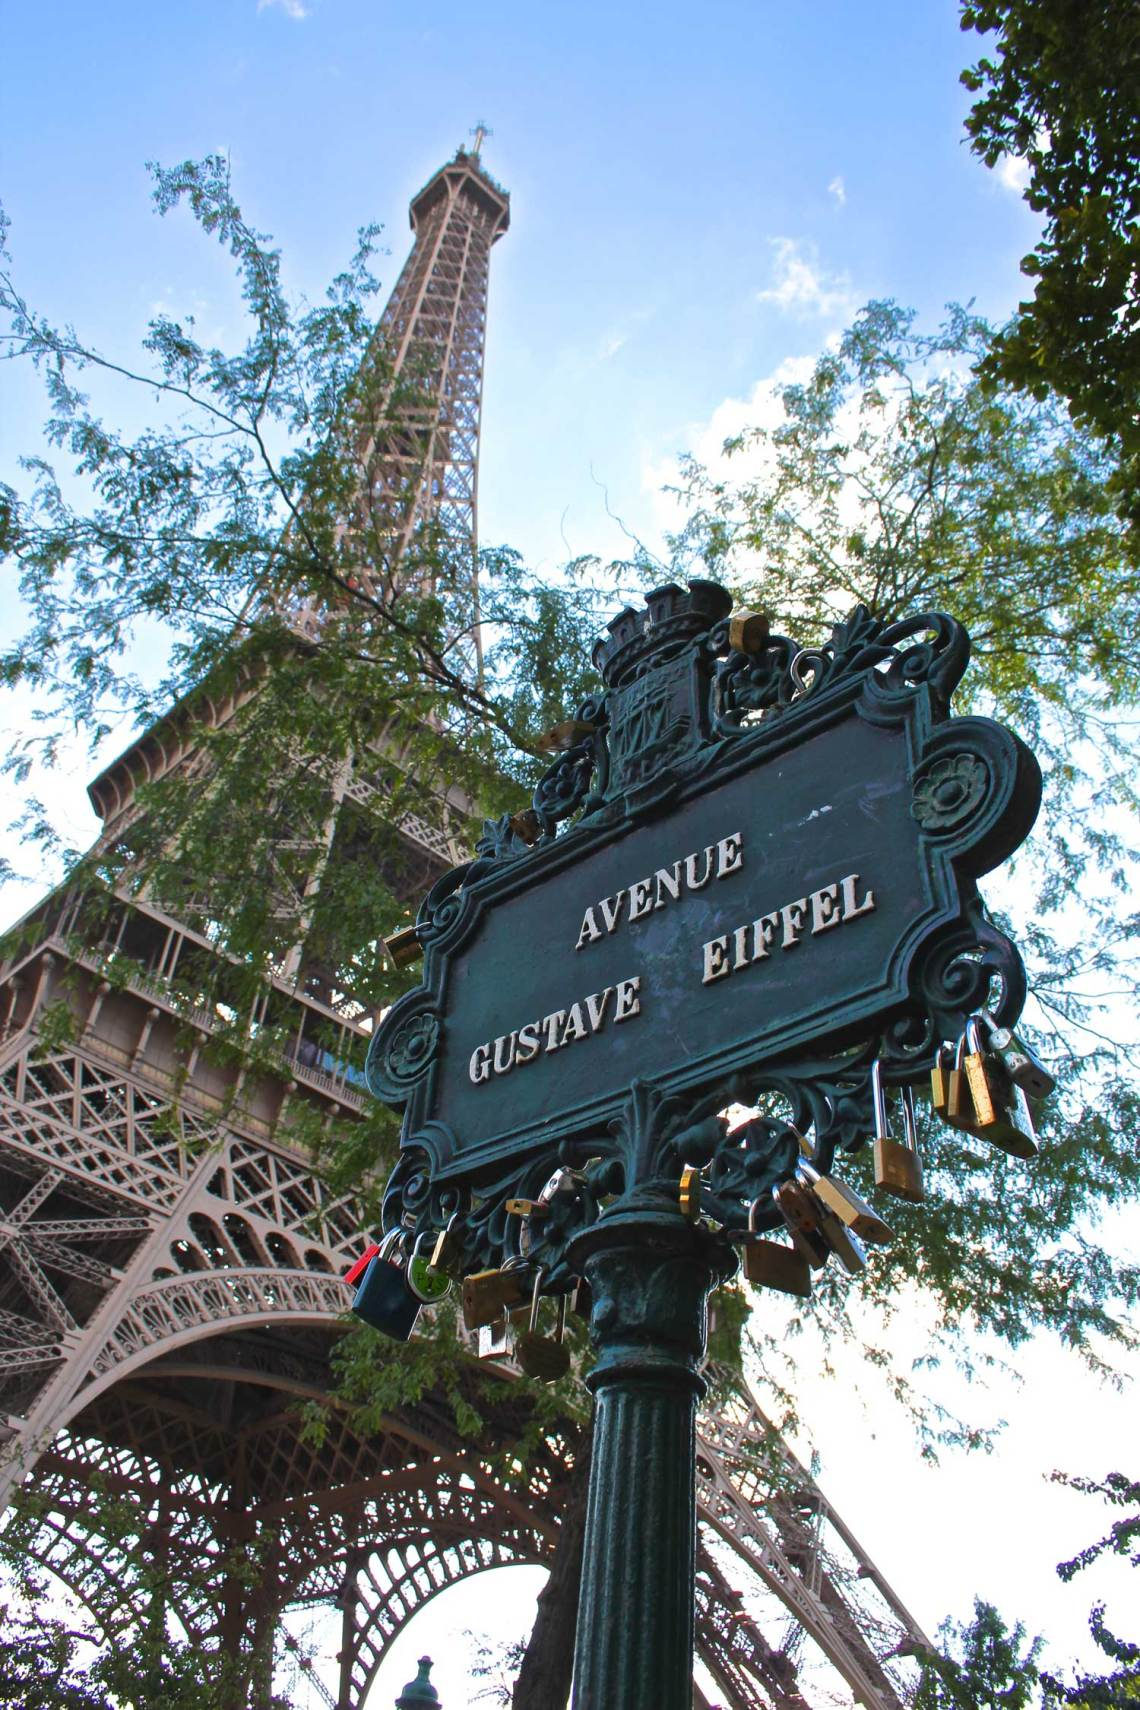 Avenue Gustave Eiffel, sign, Eiffel Tower, Paris, France